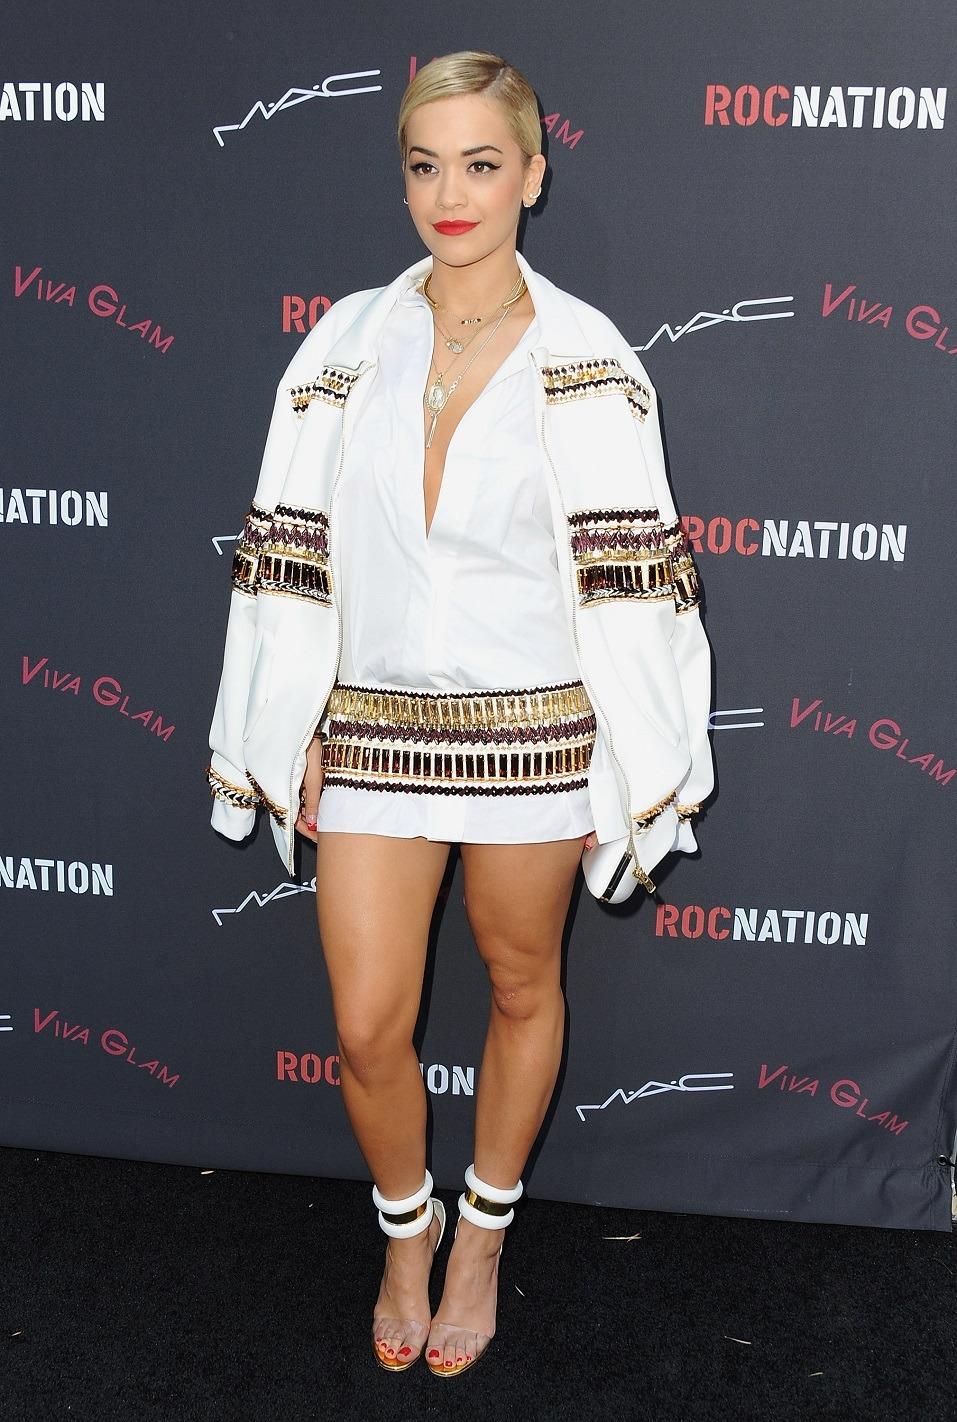 Singer/songwriter Rita Ora arrives at the Roc Nation